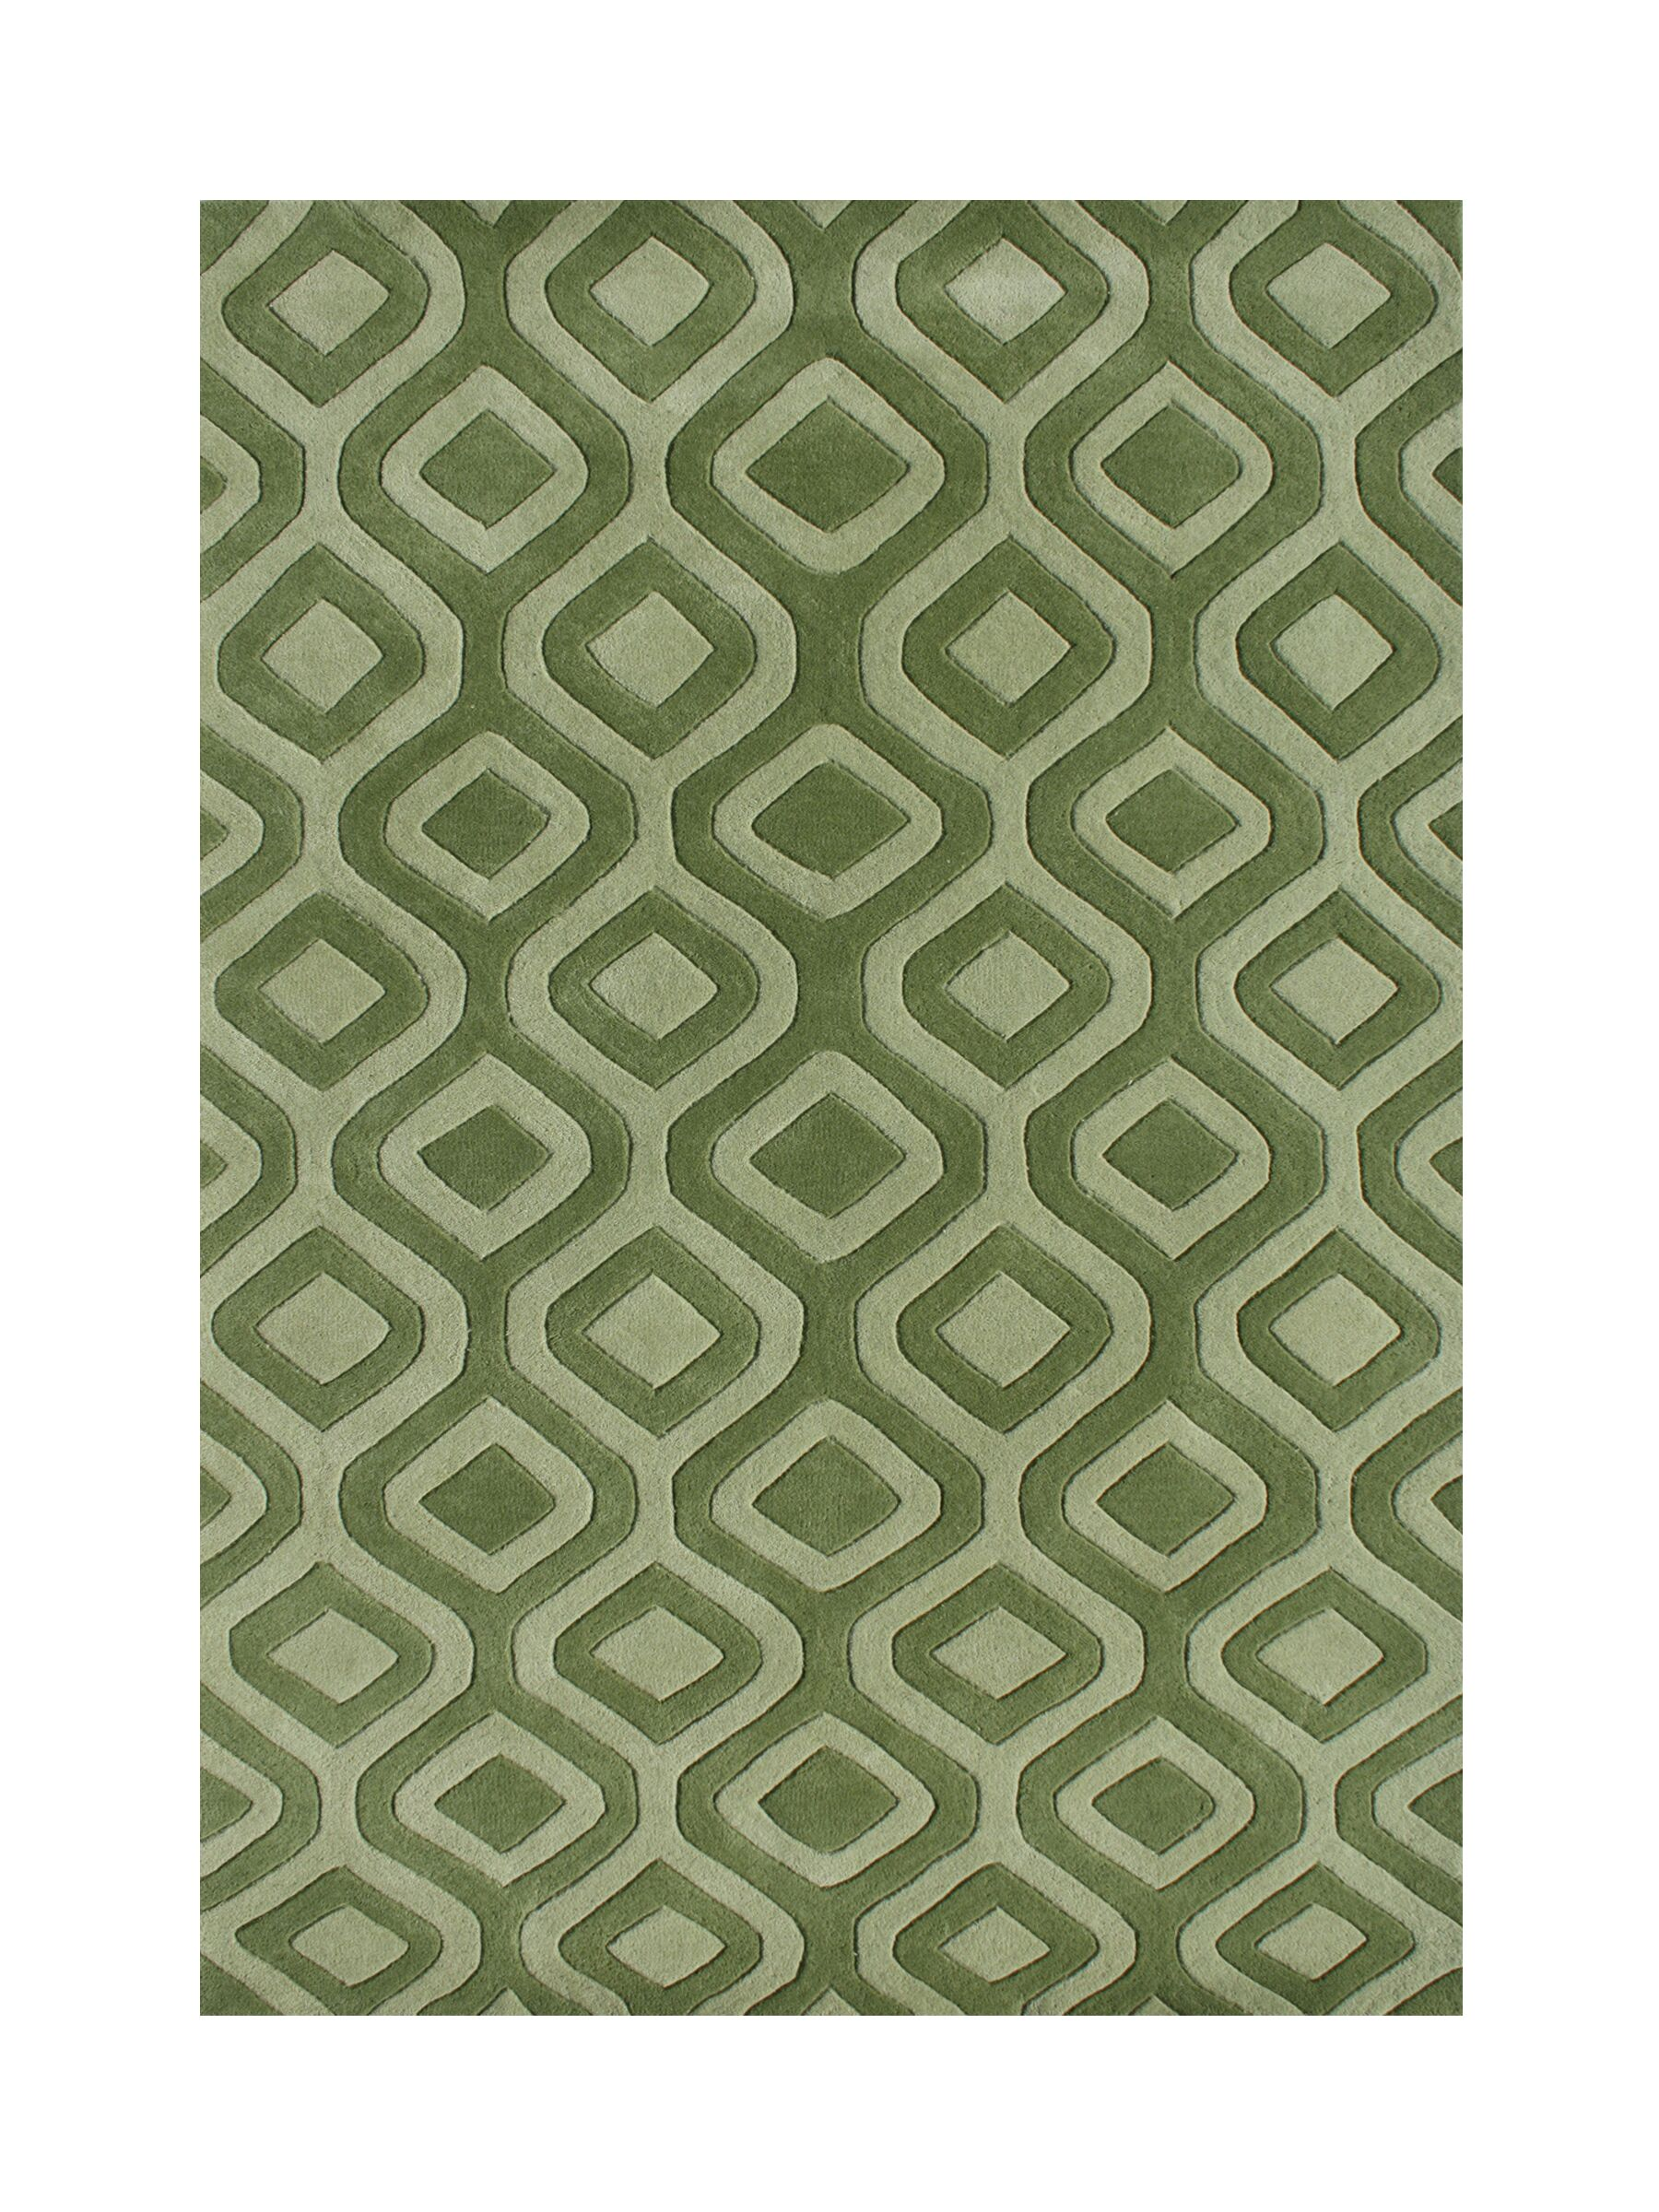 Weatherby Hand-Tufted Green Area Rug Rug Size: Rectangle 9' x 12'